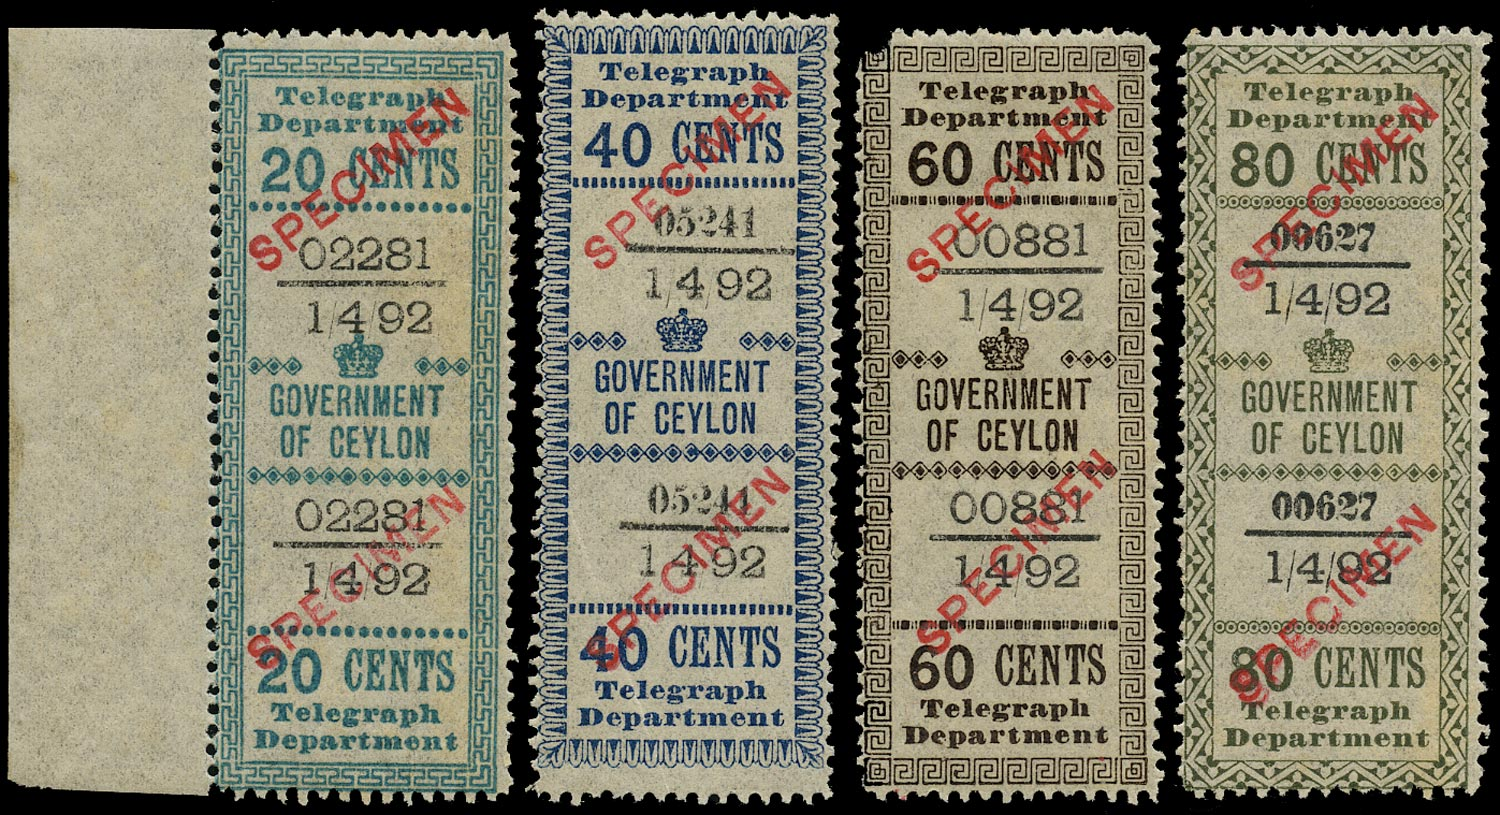 CEYLON 1882  SGT127, T128a, T129, T130a Specimen QV Telegraph stamps local issue set of 4 with sans-serif overprint in red